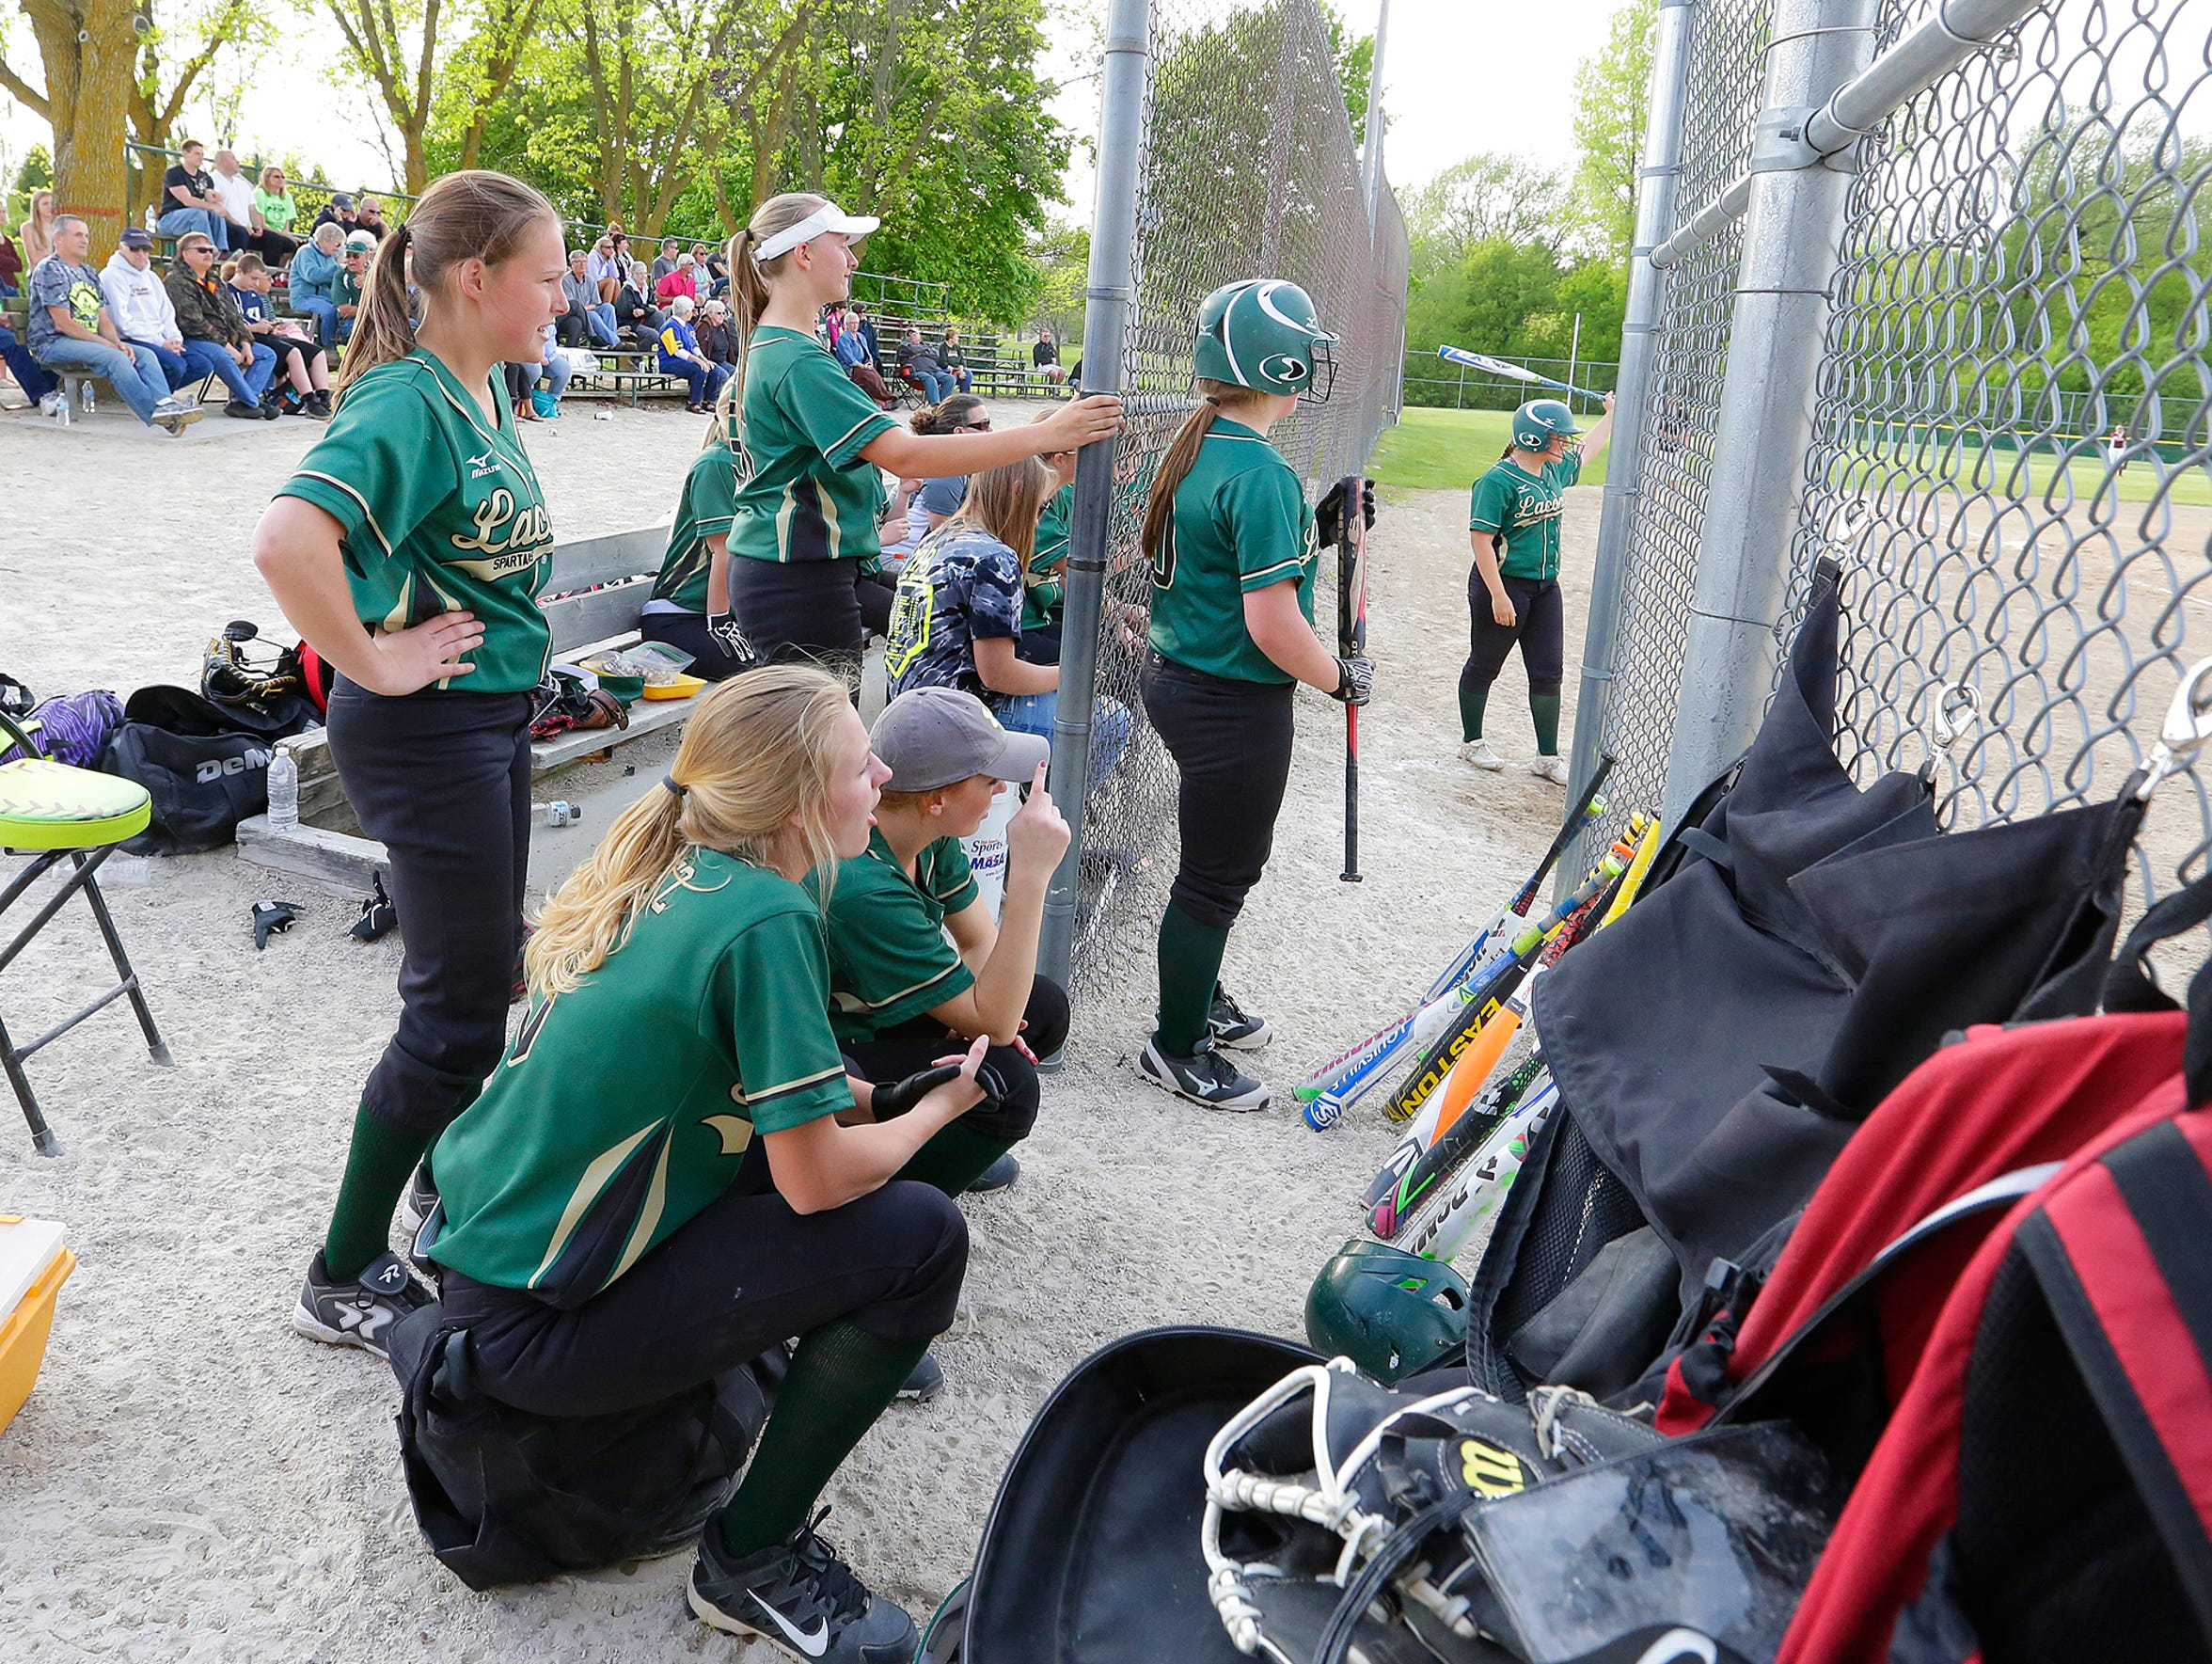 The Laconia softball team cheers from the bench during